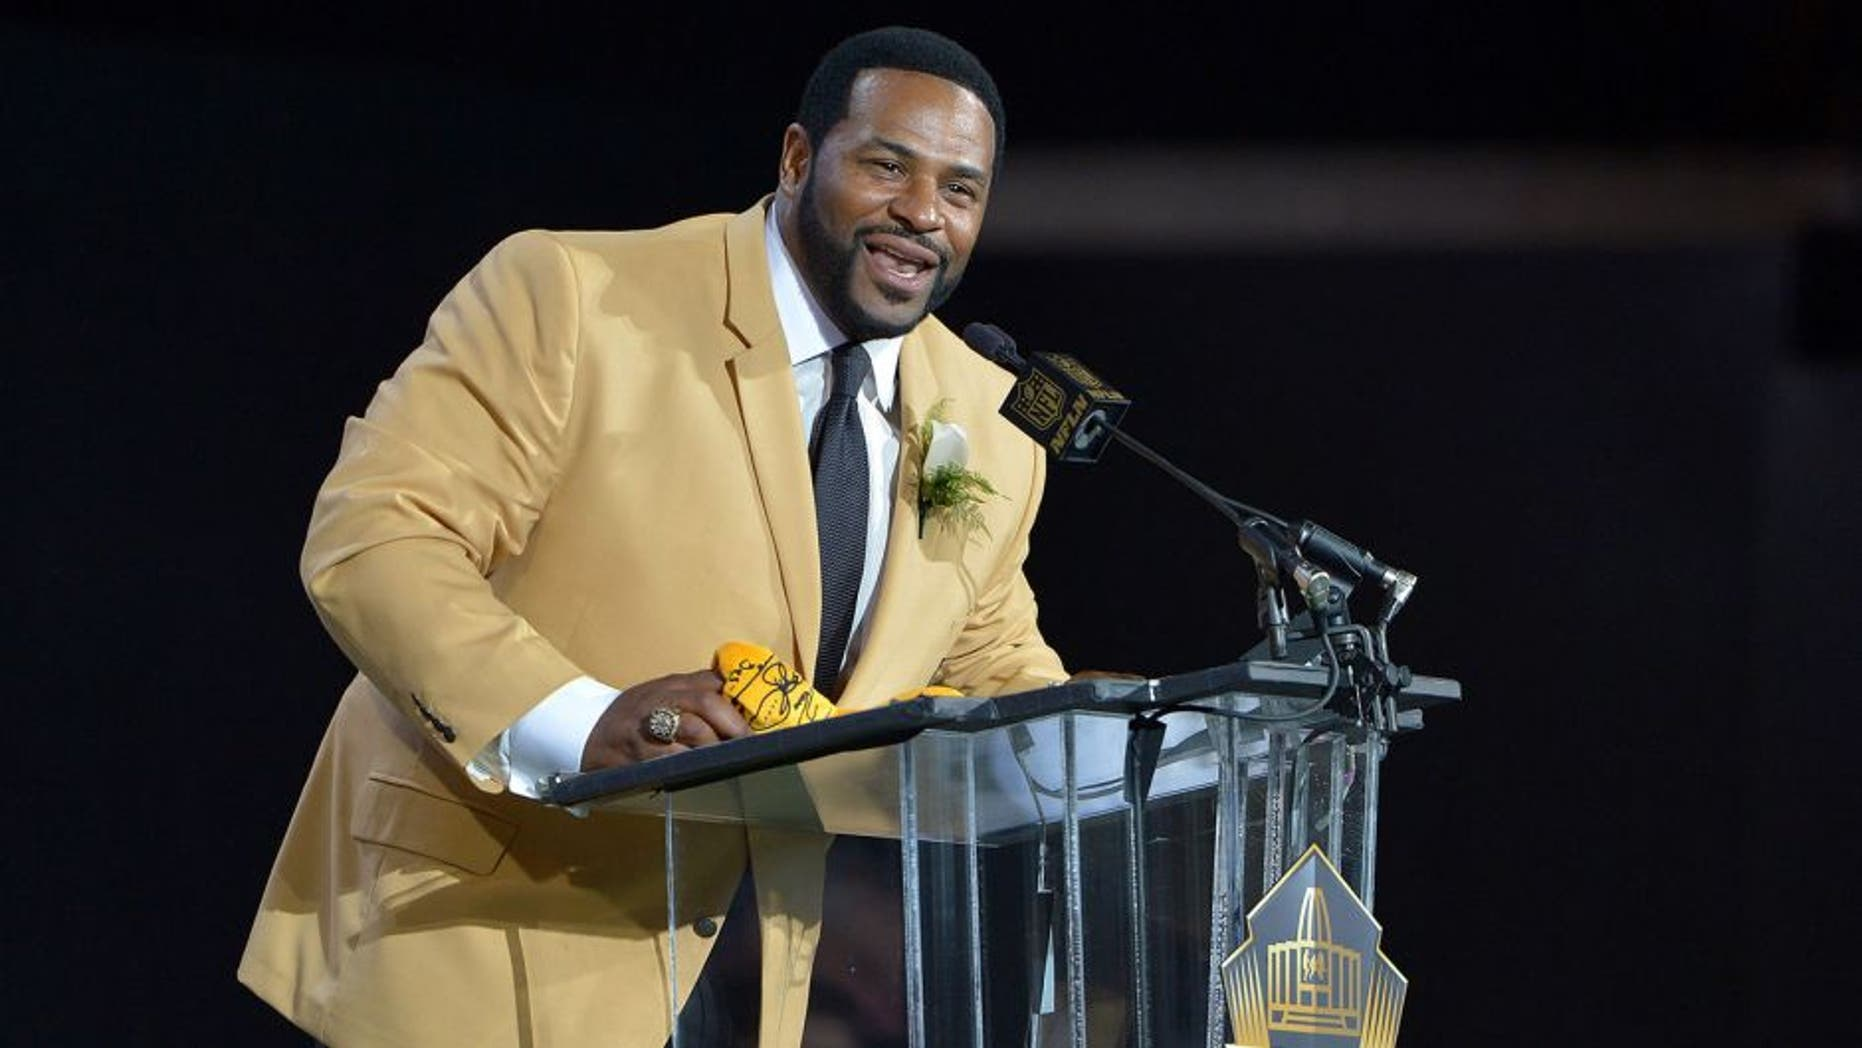 Aug 8, 2015; Canton, OH, USA; Jerome Bettis speaks during the 2015 Pro Football Hall of Fame enshrinement at Tom Benson Hall of Fame Stadium. Mandatory Credit: Kirby Lee-USA TODAY Sports